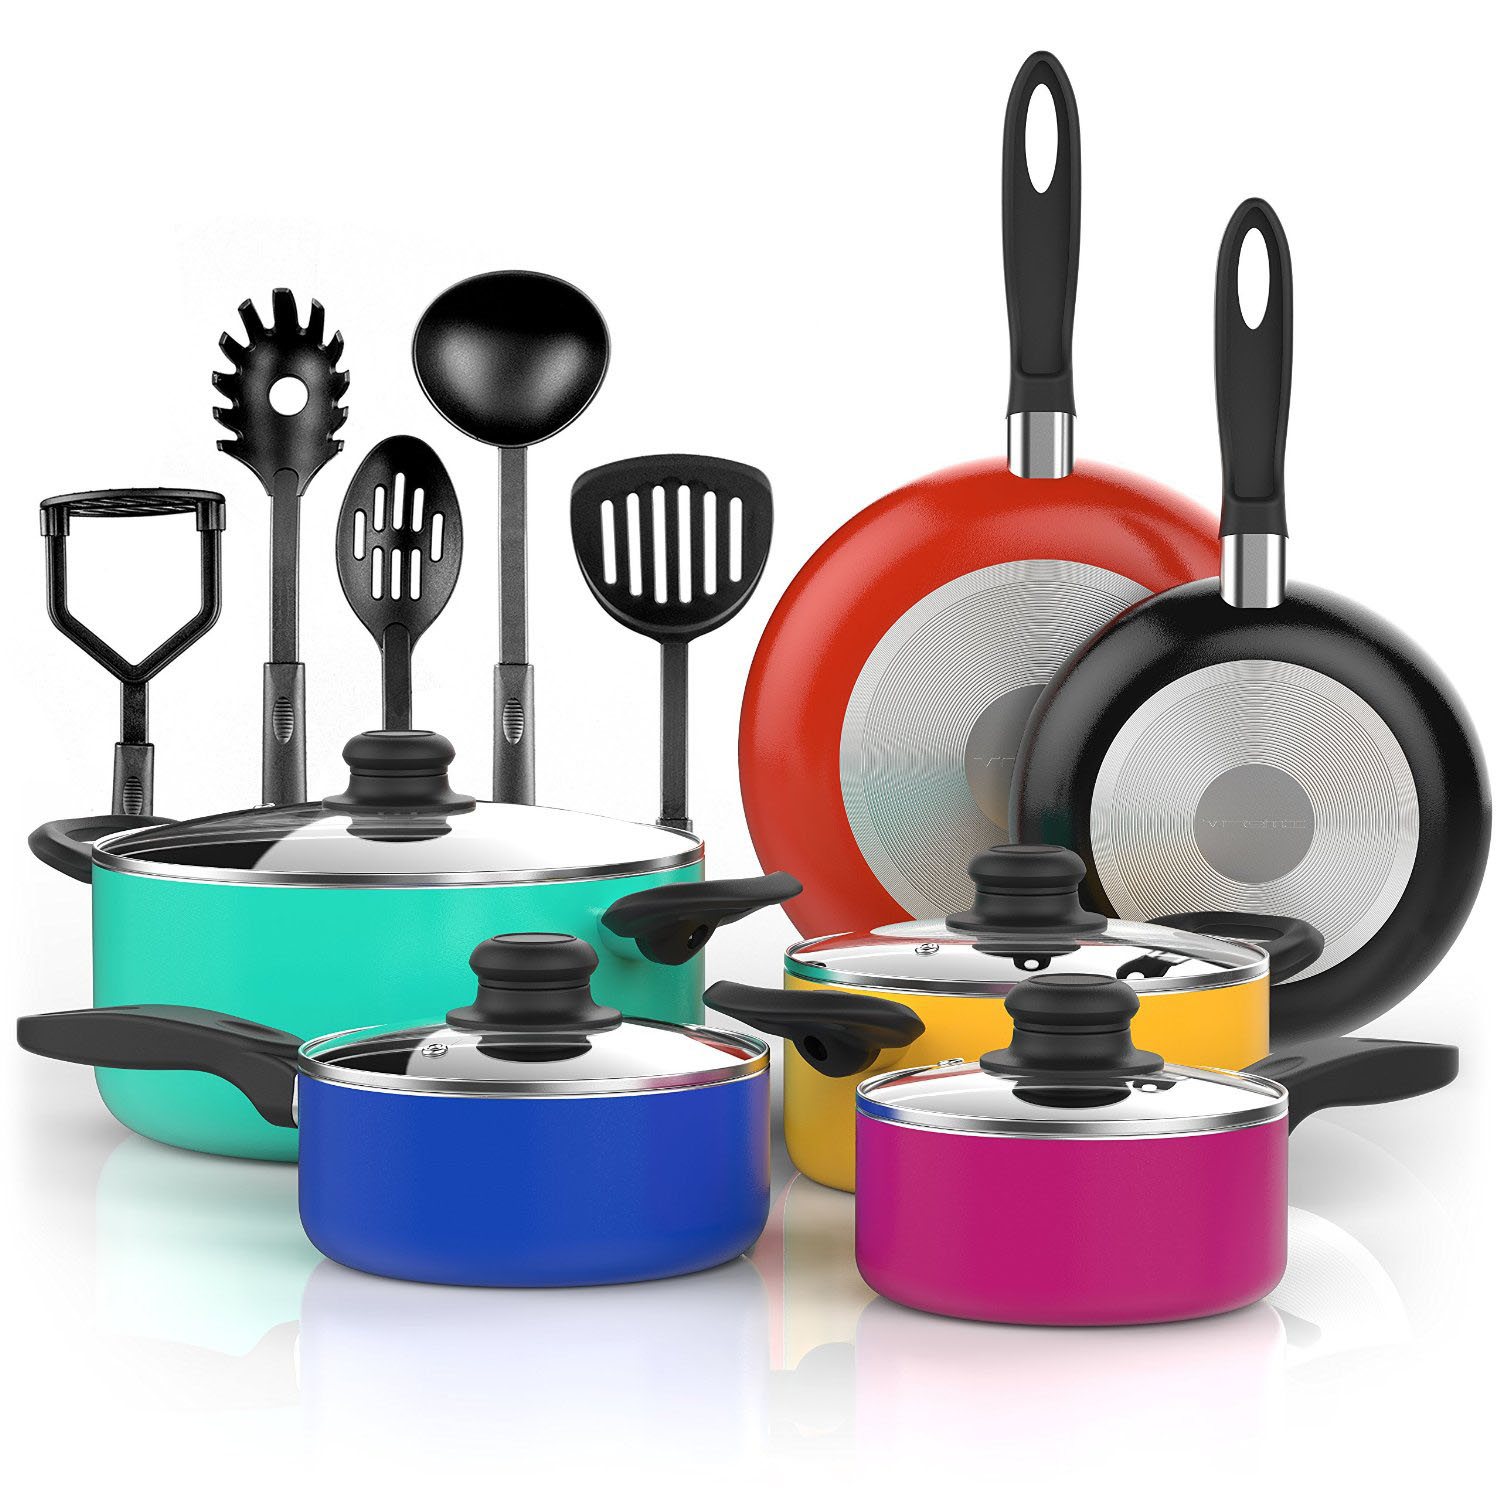 Deal of the Day: 57% Off Vremi 15-Piece Nonstick Cookware Set